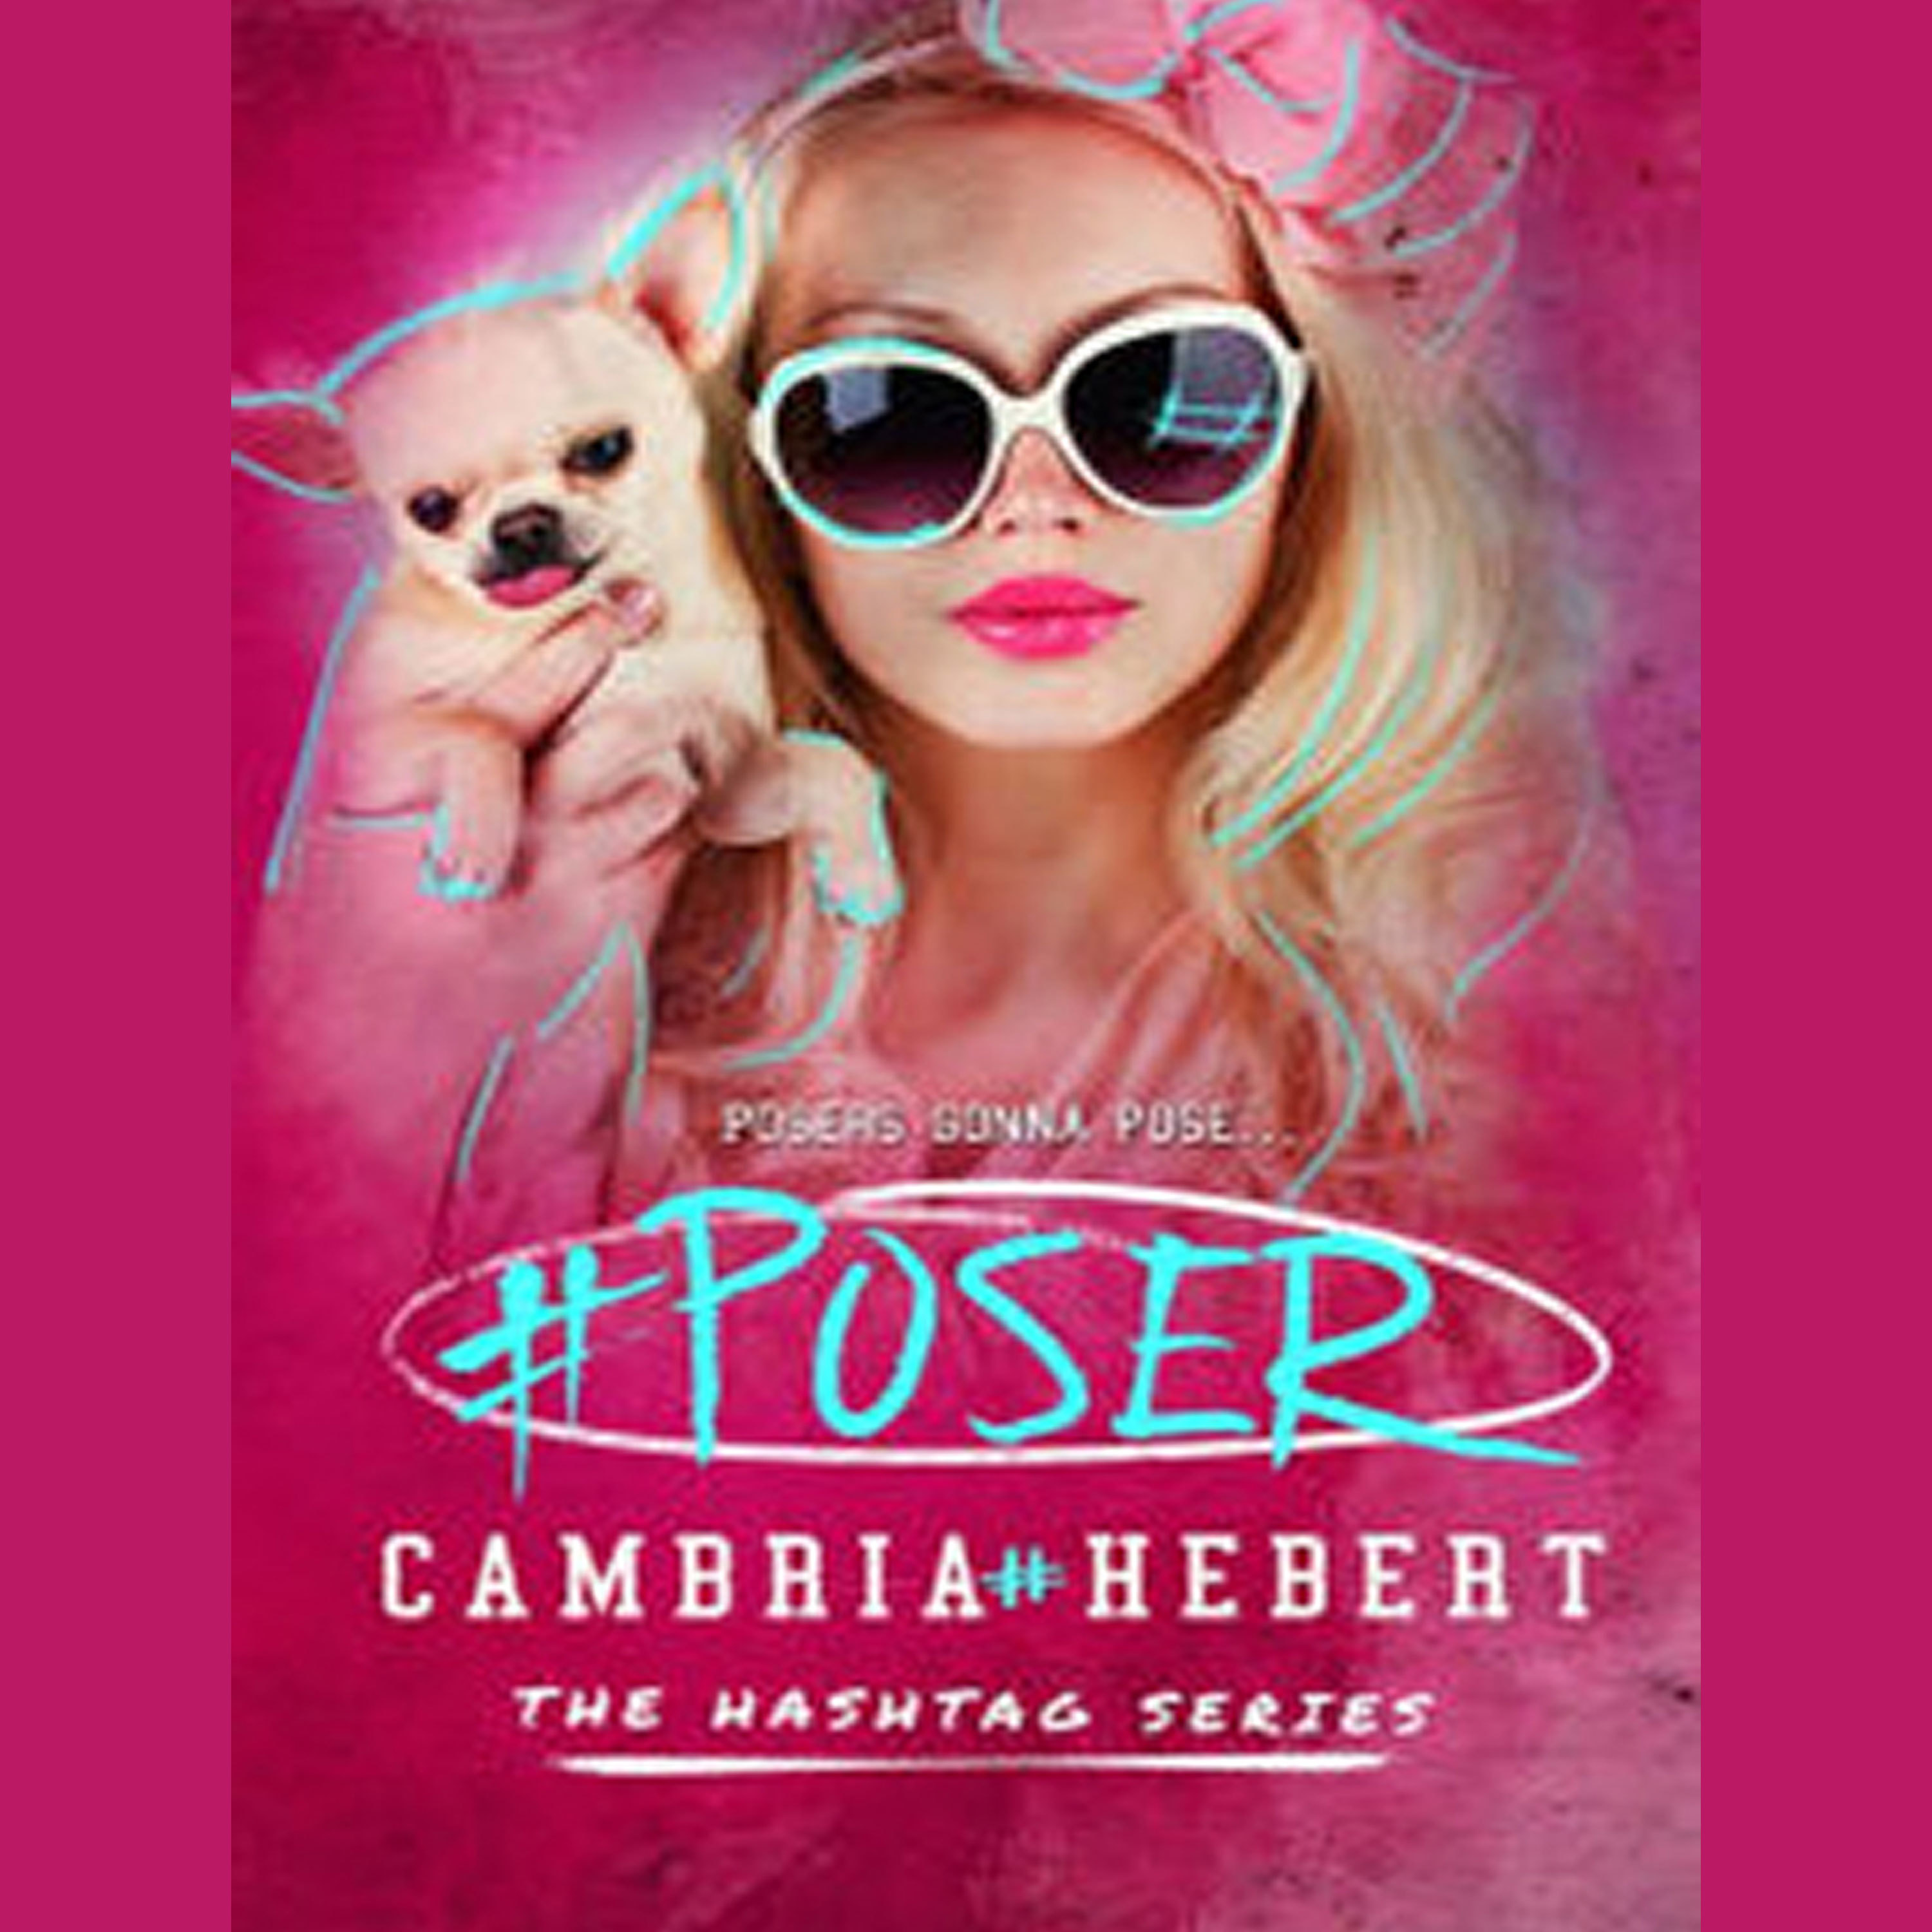 Printable #Poser Audiobook Cover Art